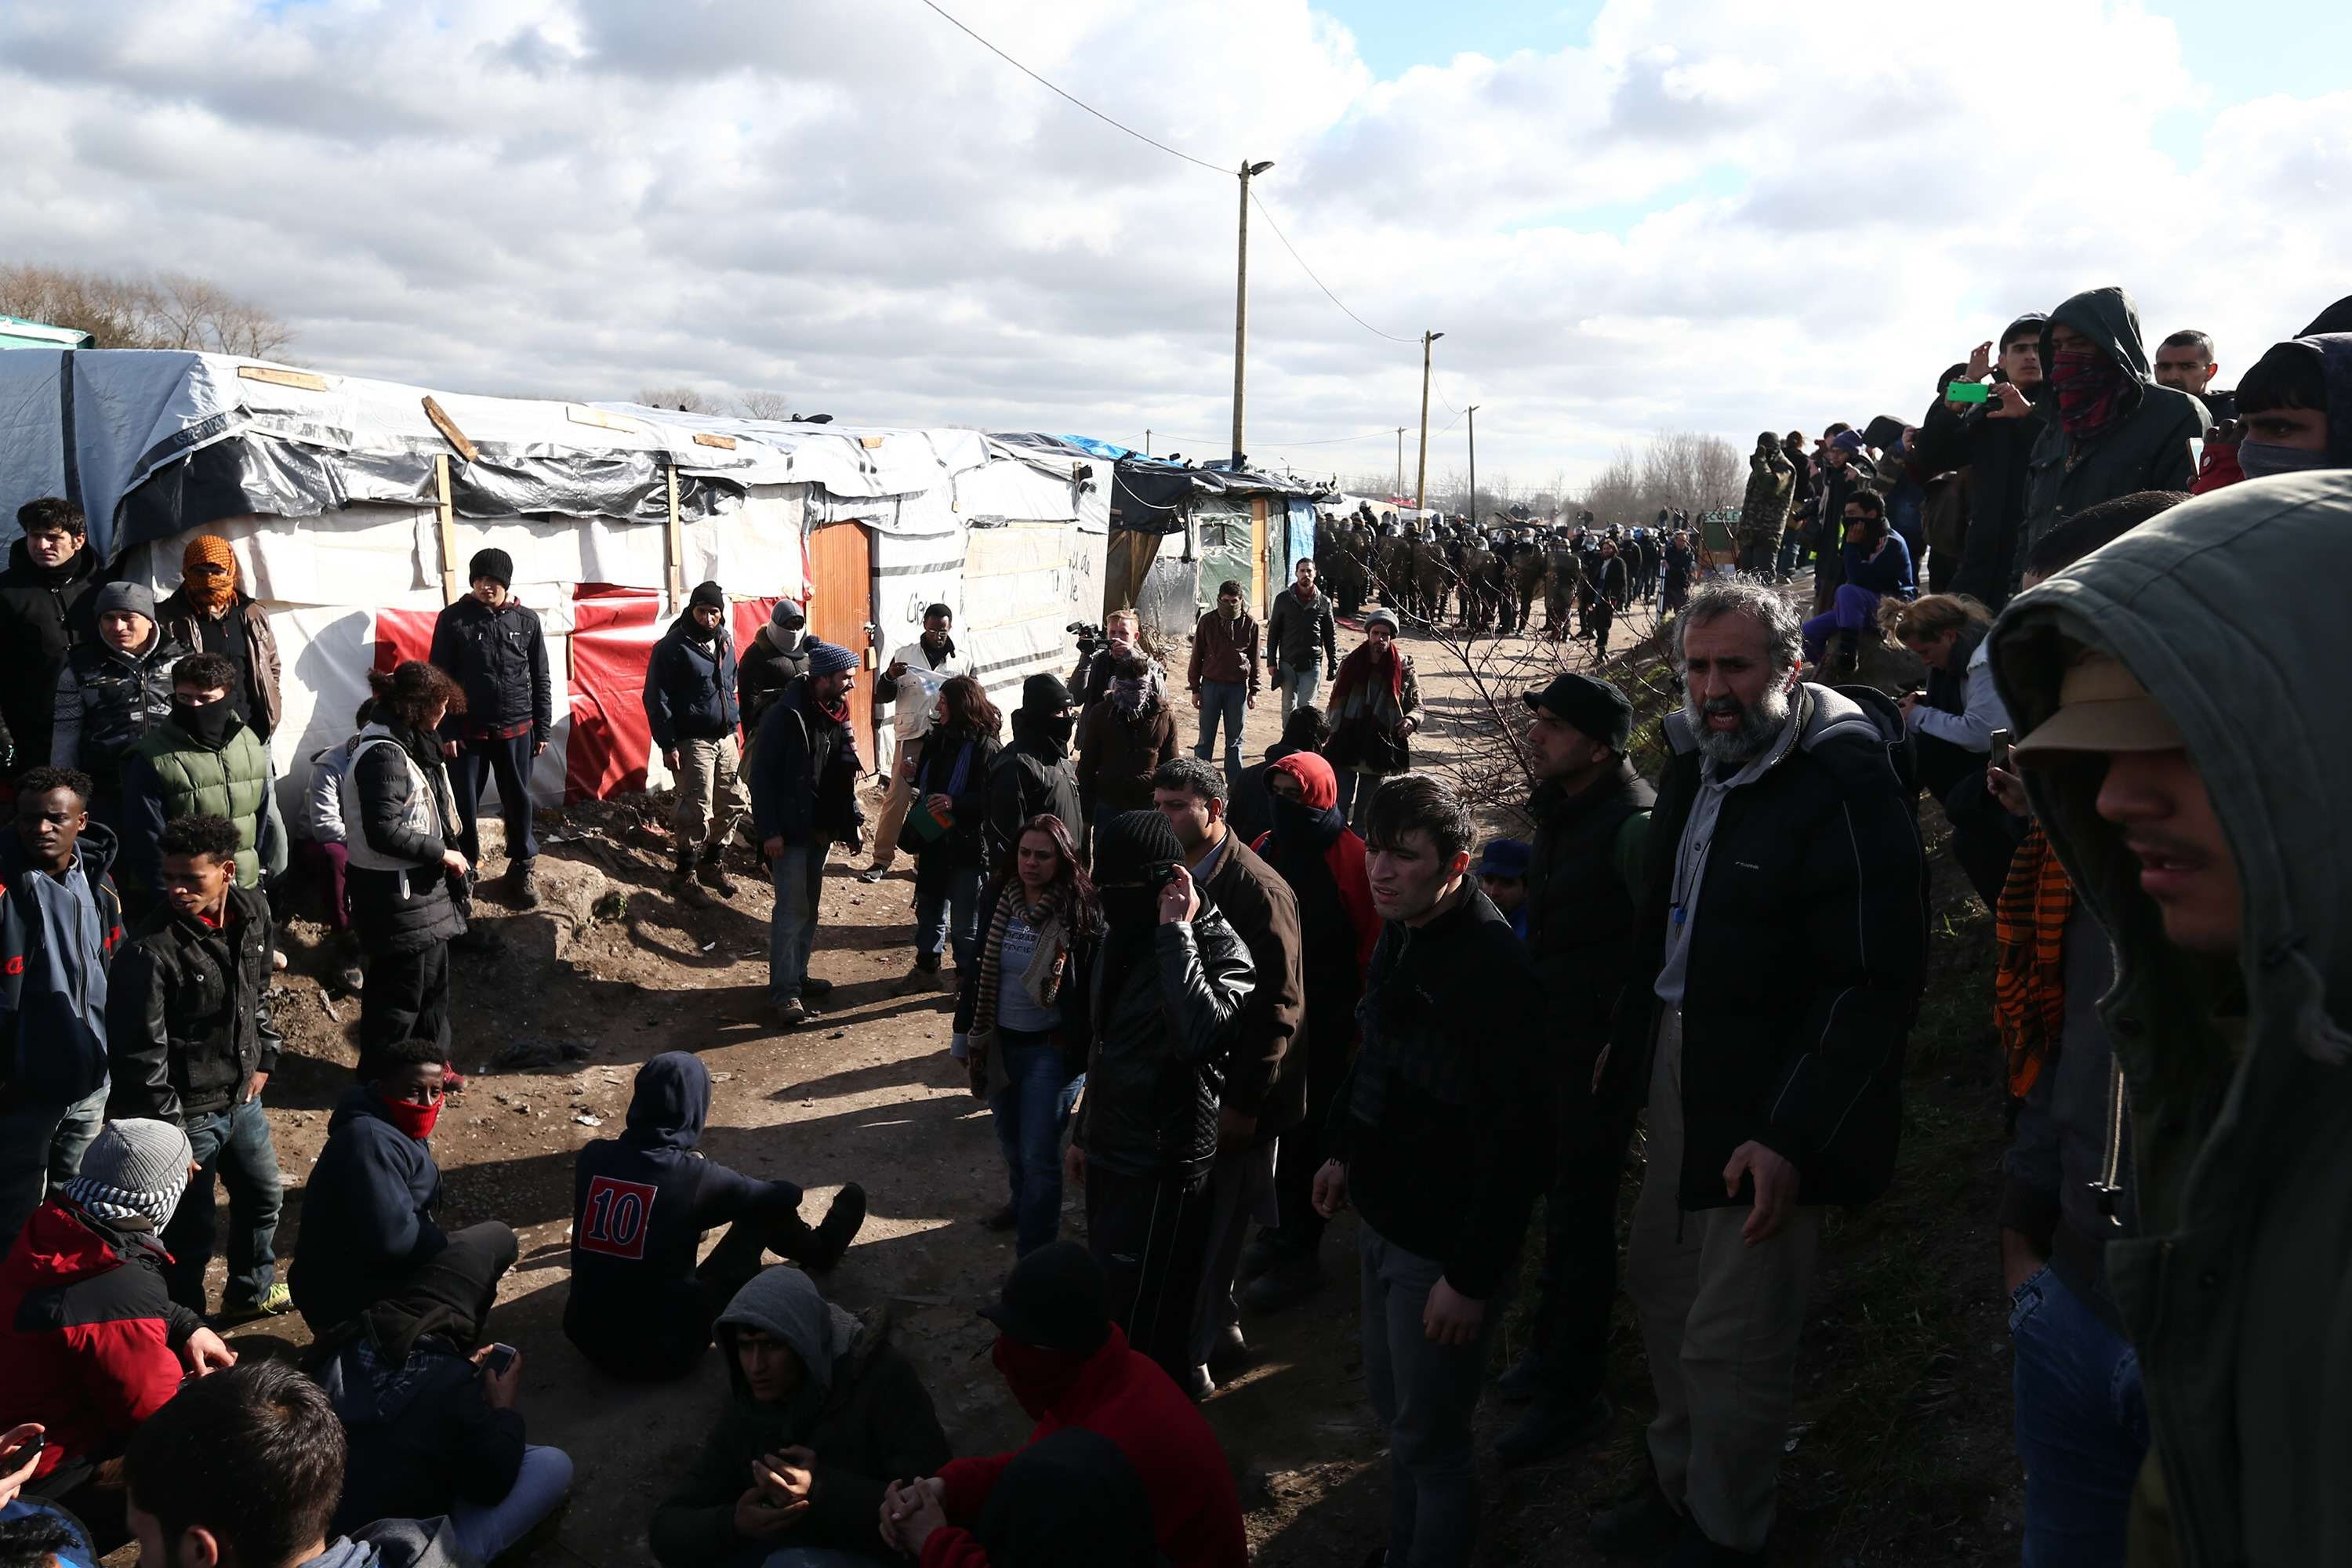 calais 1 UK To Build 13 Foot Wall To Contain Migrants In Calais